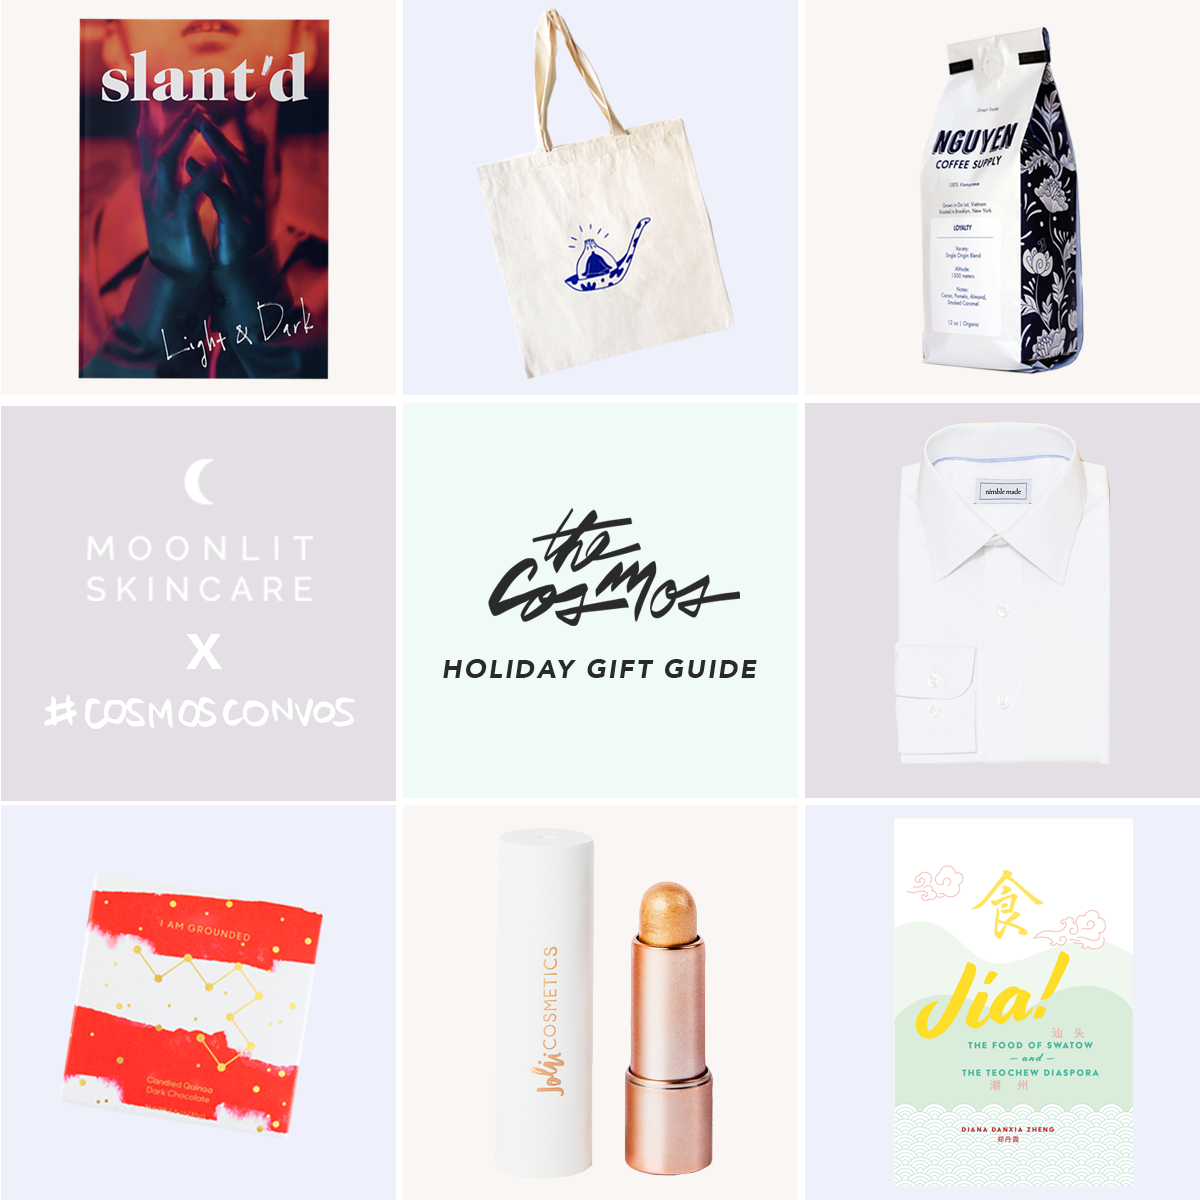 In 2019, The Cosmos will host our first ever curated market IRL!! This market will exclusively support and showcase Asian women entrepreneurs and creators. If you are an Asian woman based in NYC with products or services that you'd like to share with our community, we are now accepting applications. We want a diverse range of women and products! All are welcomed.     Fill out this brief application    so we can be in touch - more details to come in early 2019!